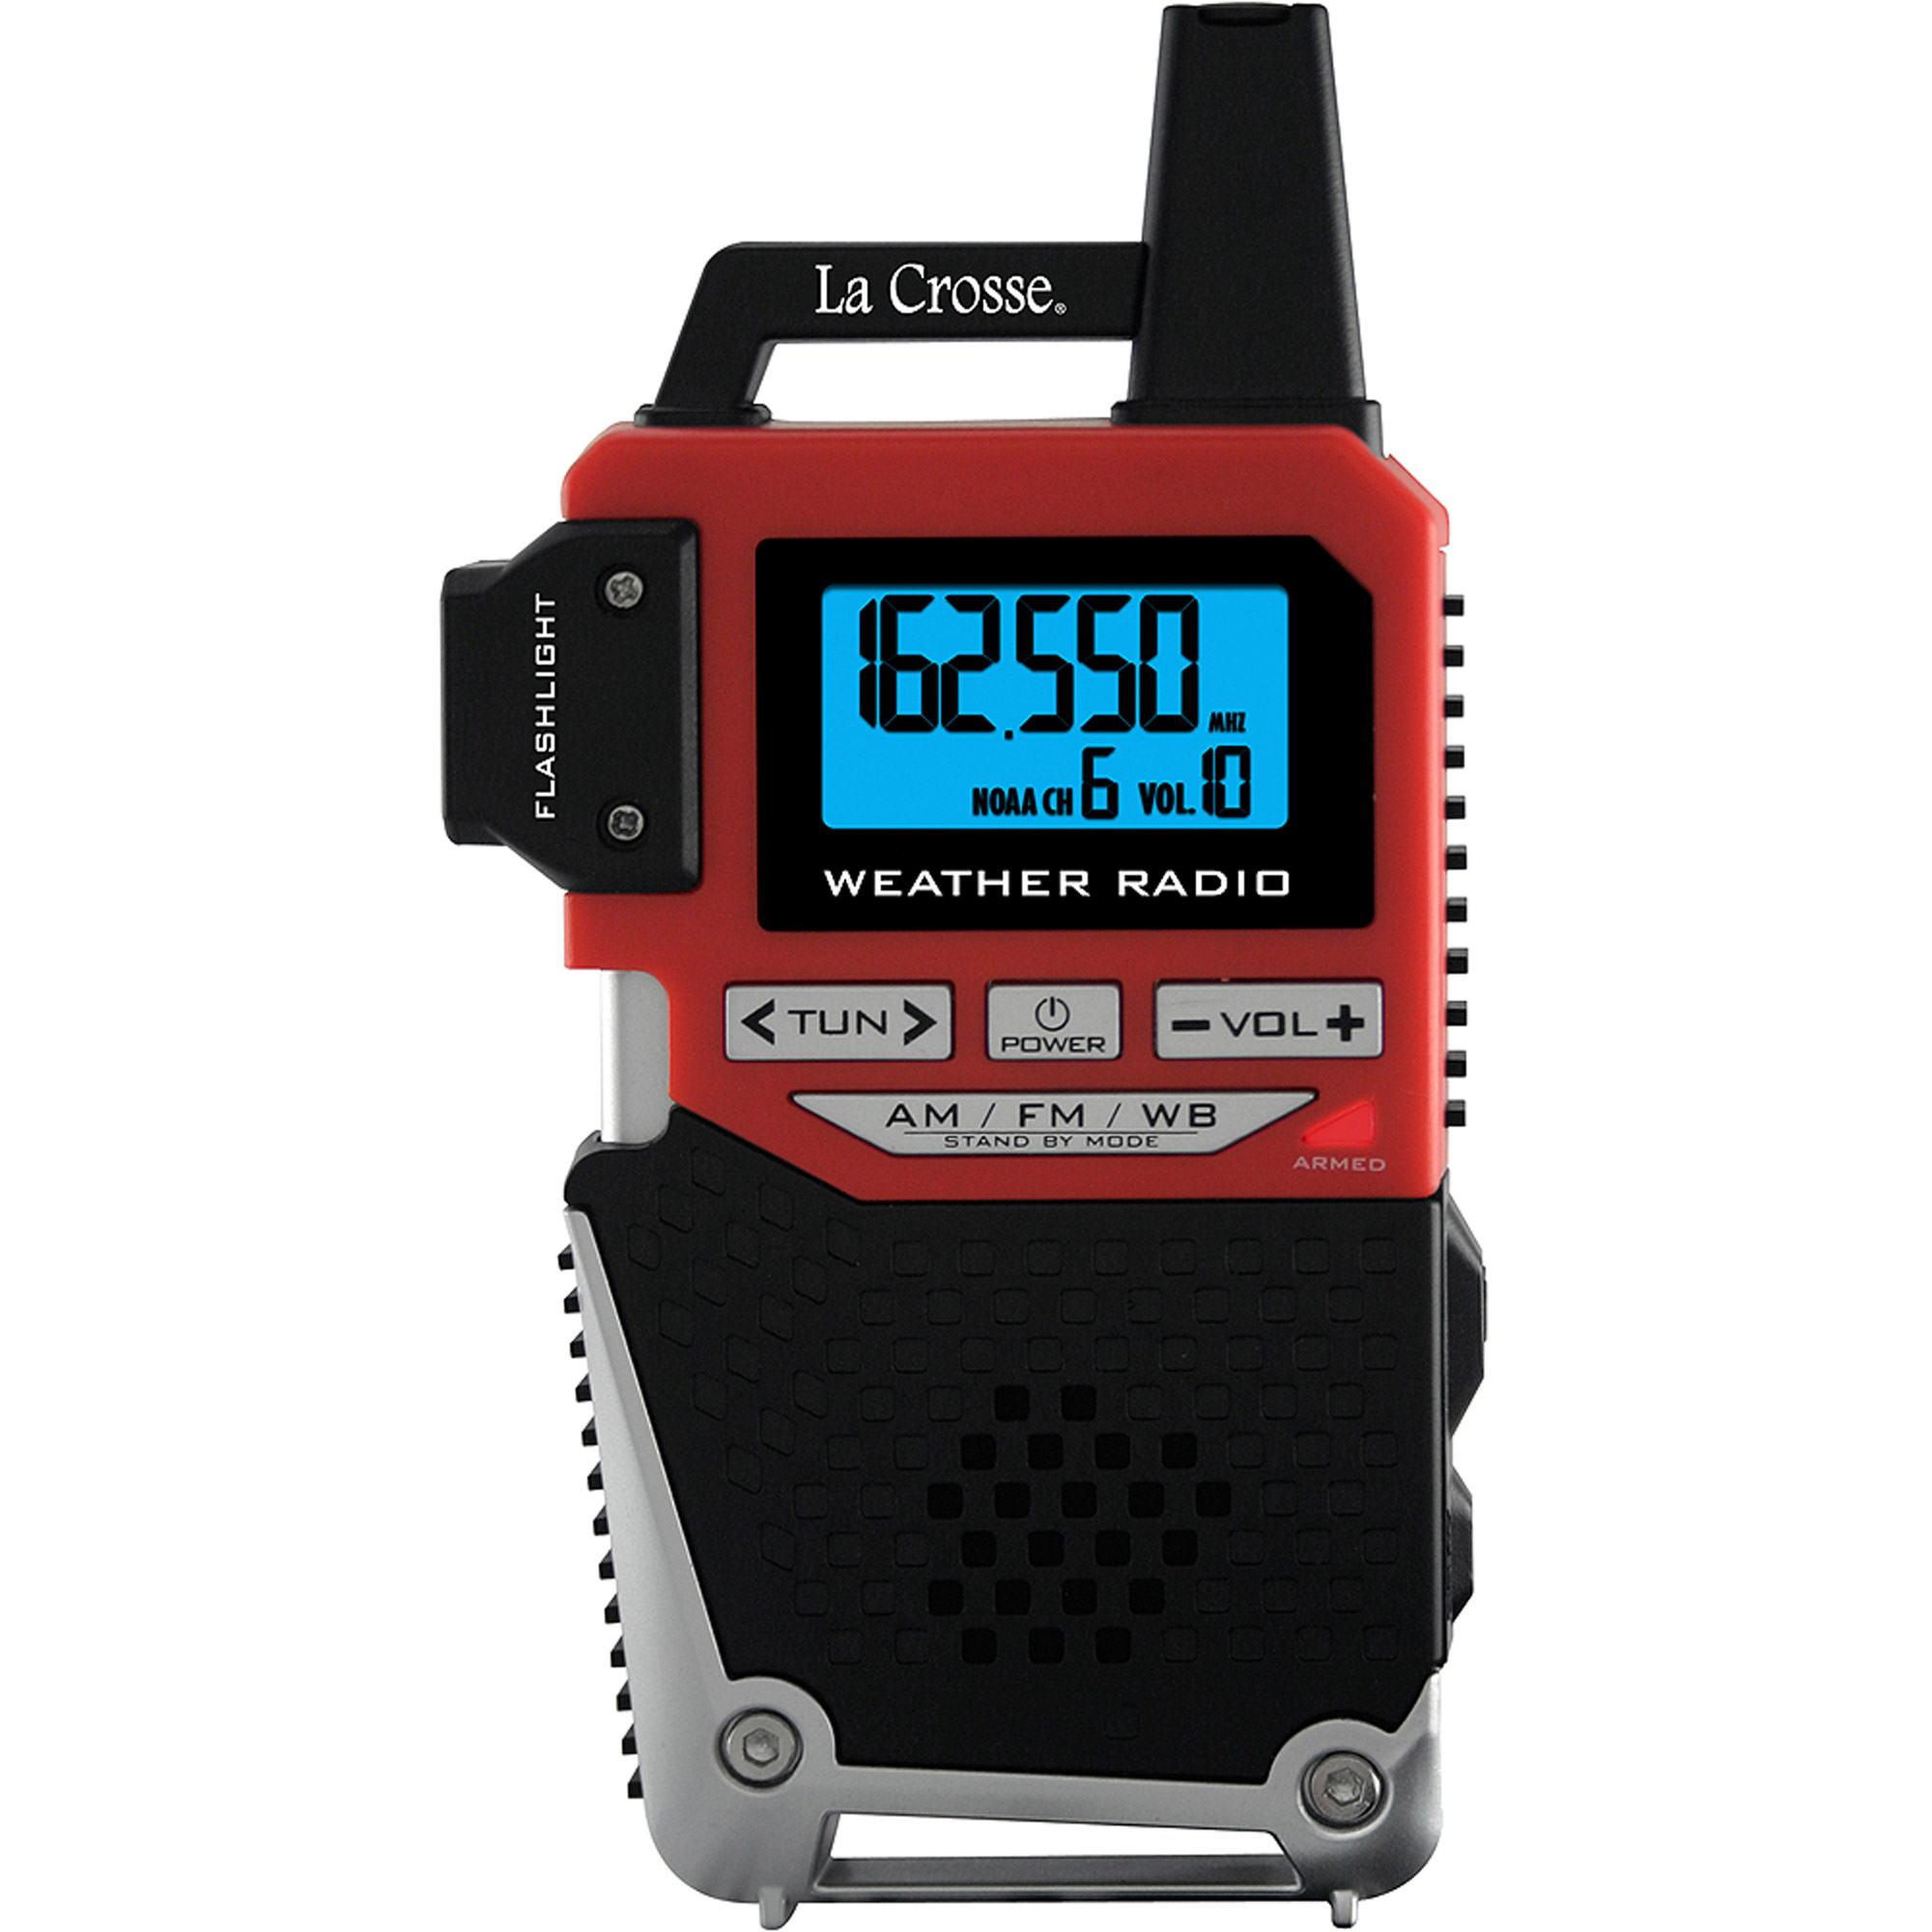 La Crosse NOAA Weather Alert Handheld Radio, Red/Black